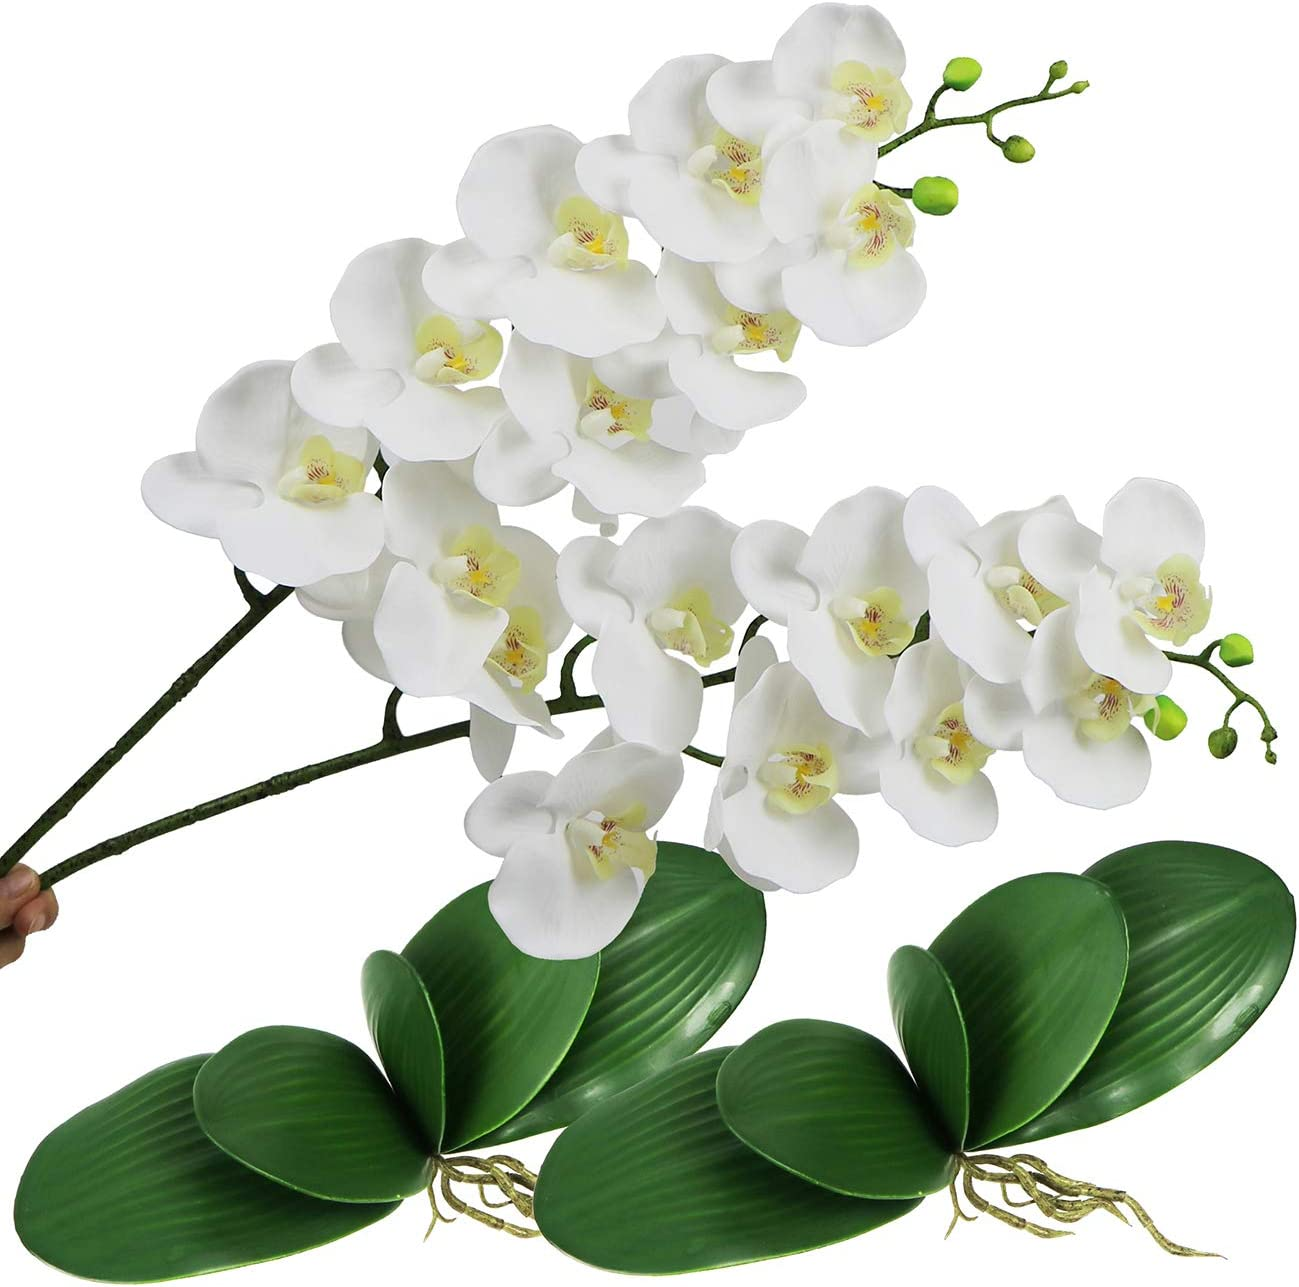 Artificial Orchid Flowers and Leaves Phalaenopsis Flower Branches Real Touch Face Plants Fake Stems Plant for Wedding Party Office Patio Yard Home Floral Decor (White Orchid Flowers)